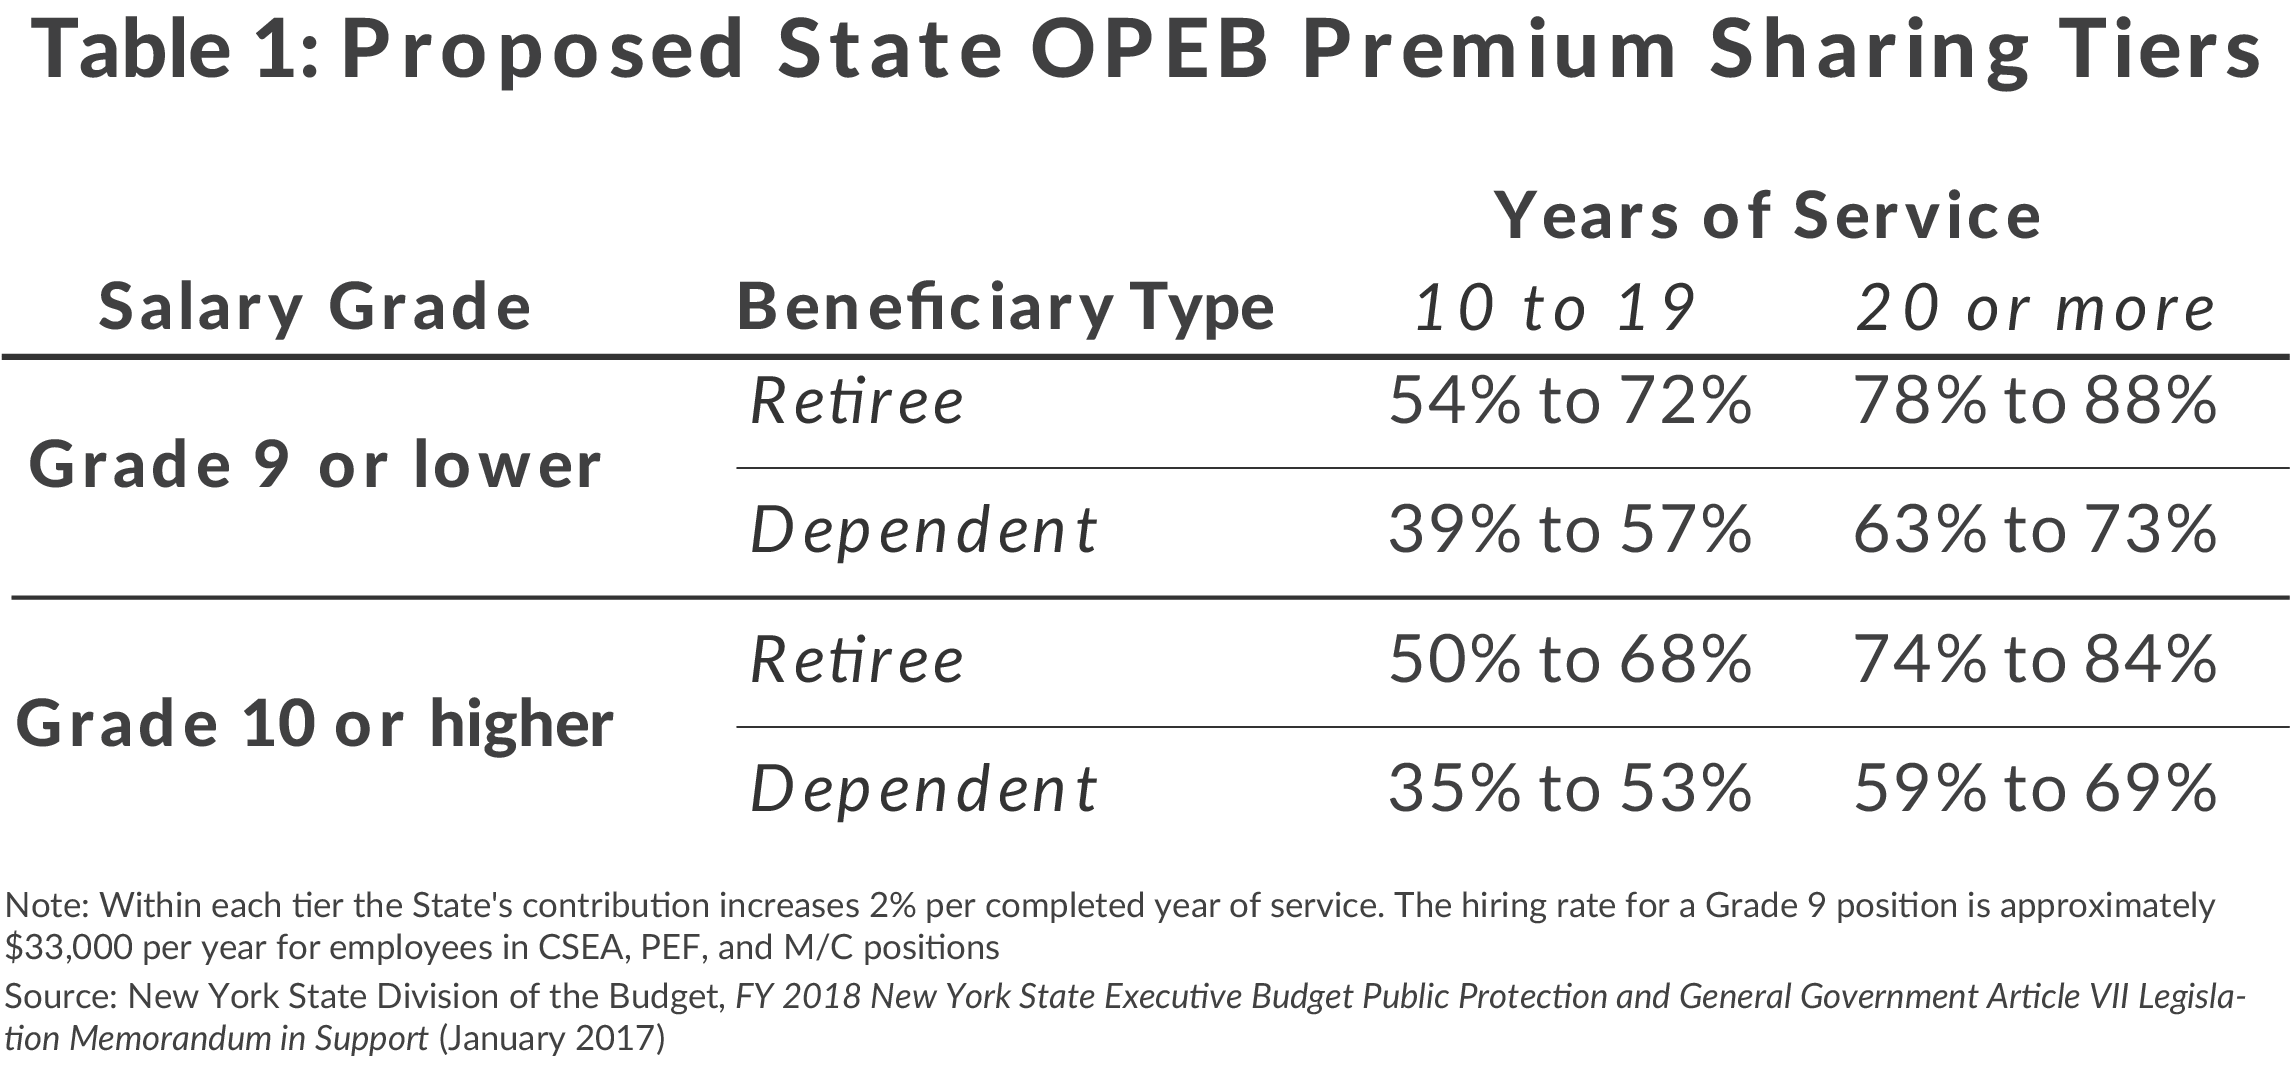 Table 1: Proposed State OPEB Premium Sharing Tiers